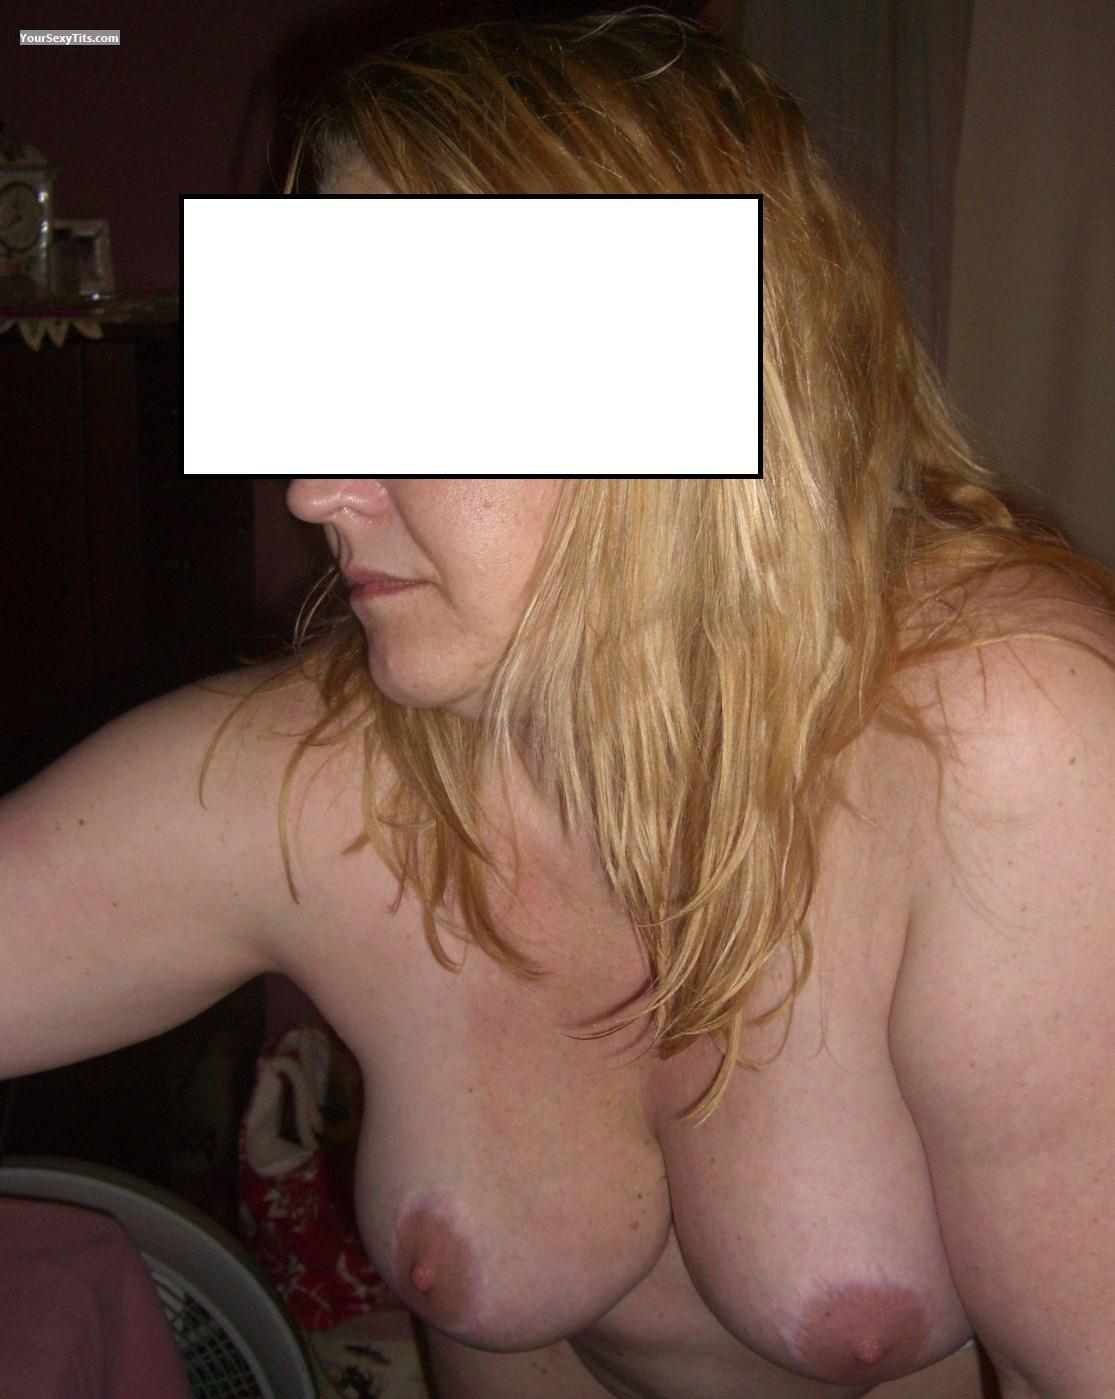 My Very big Tits Getting Ready